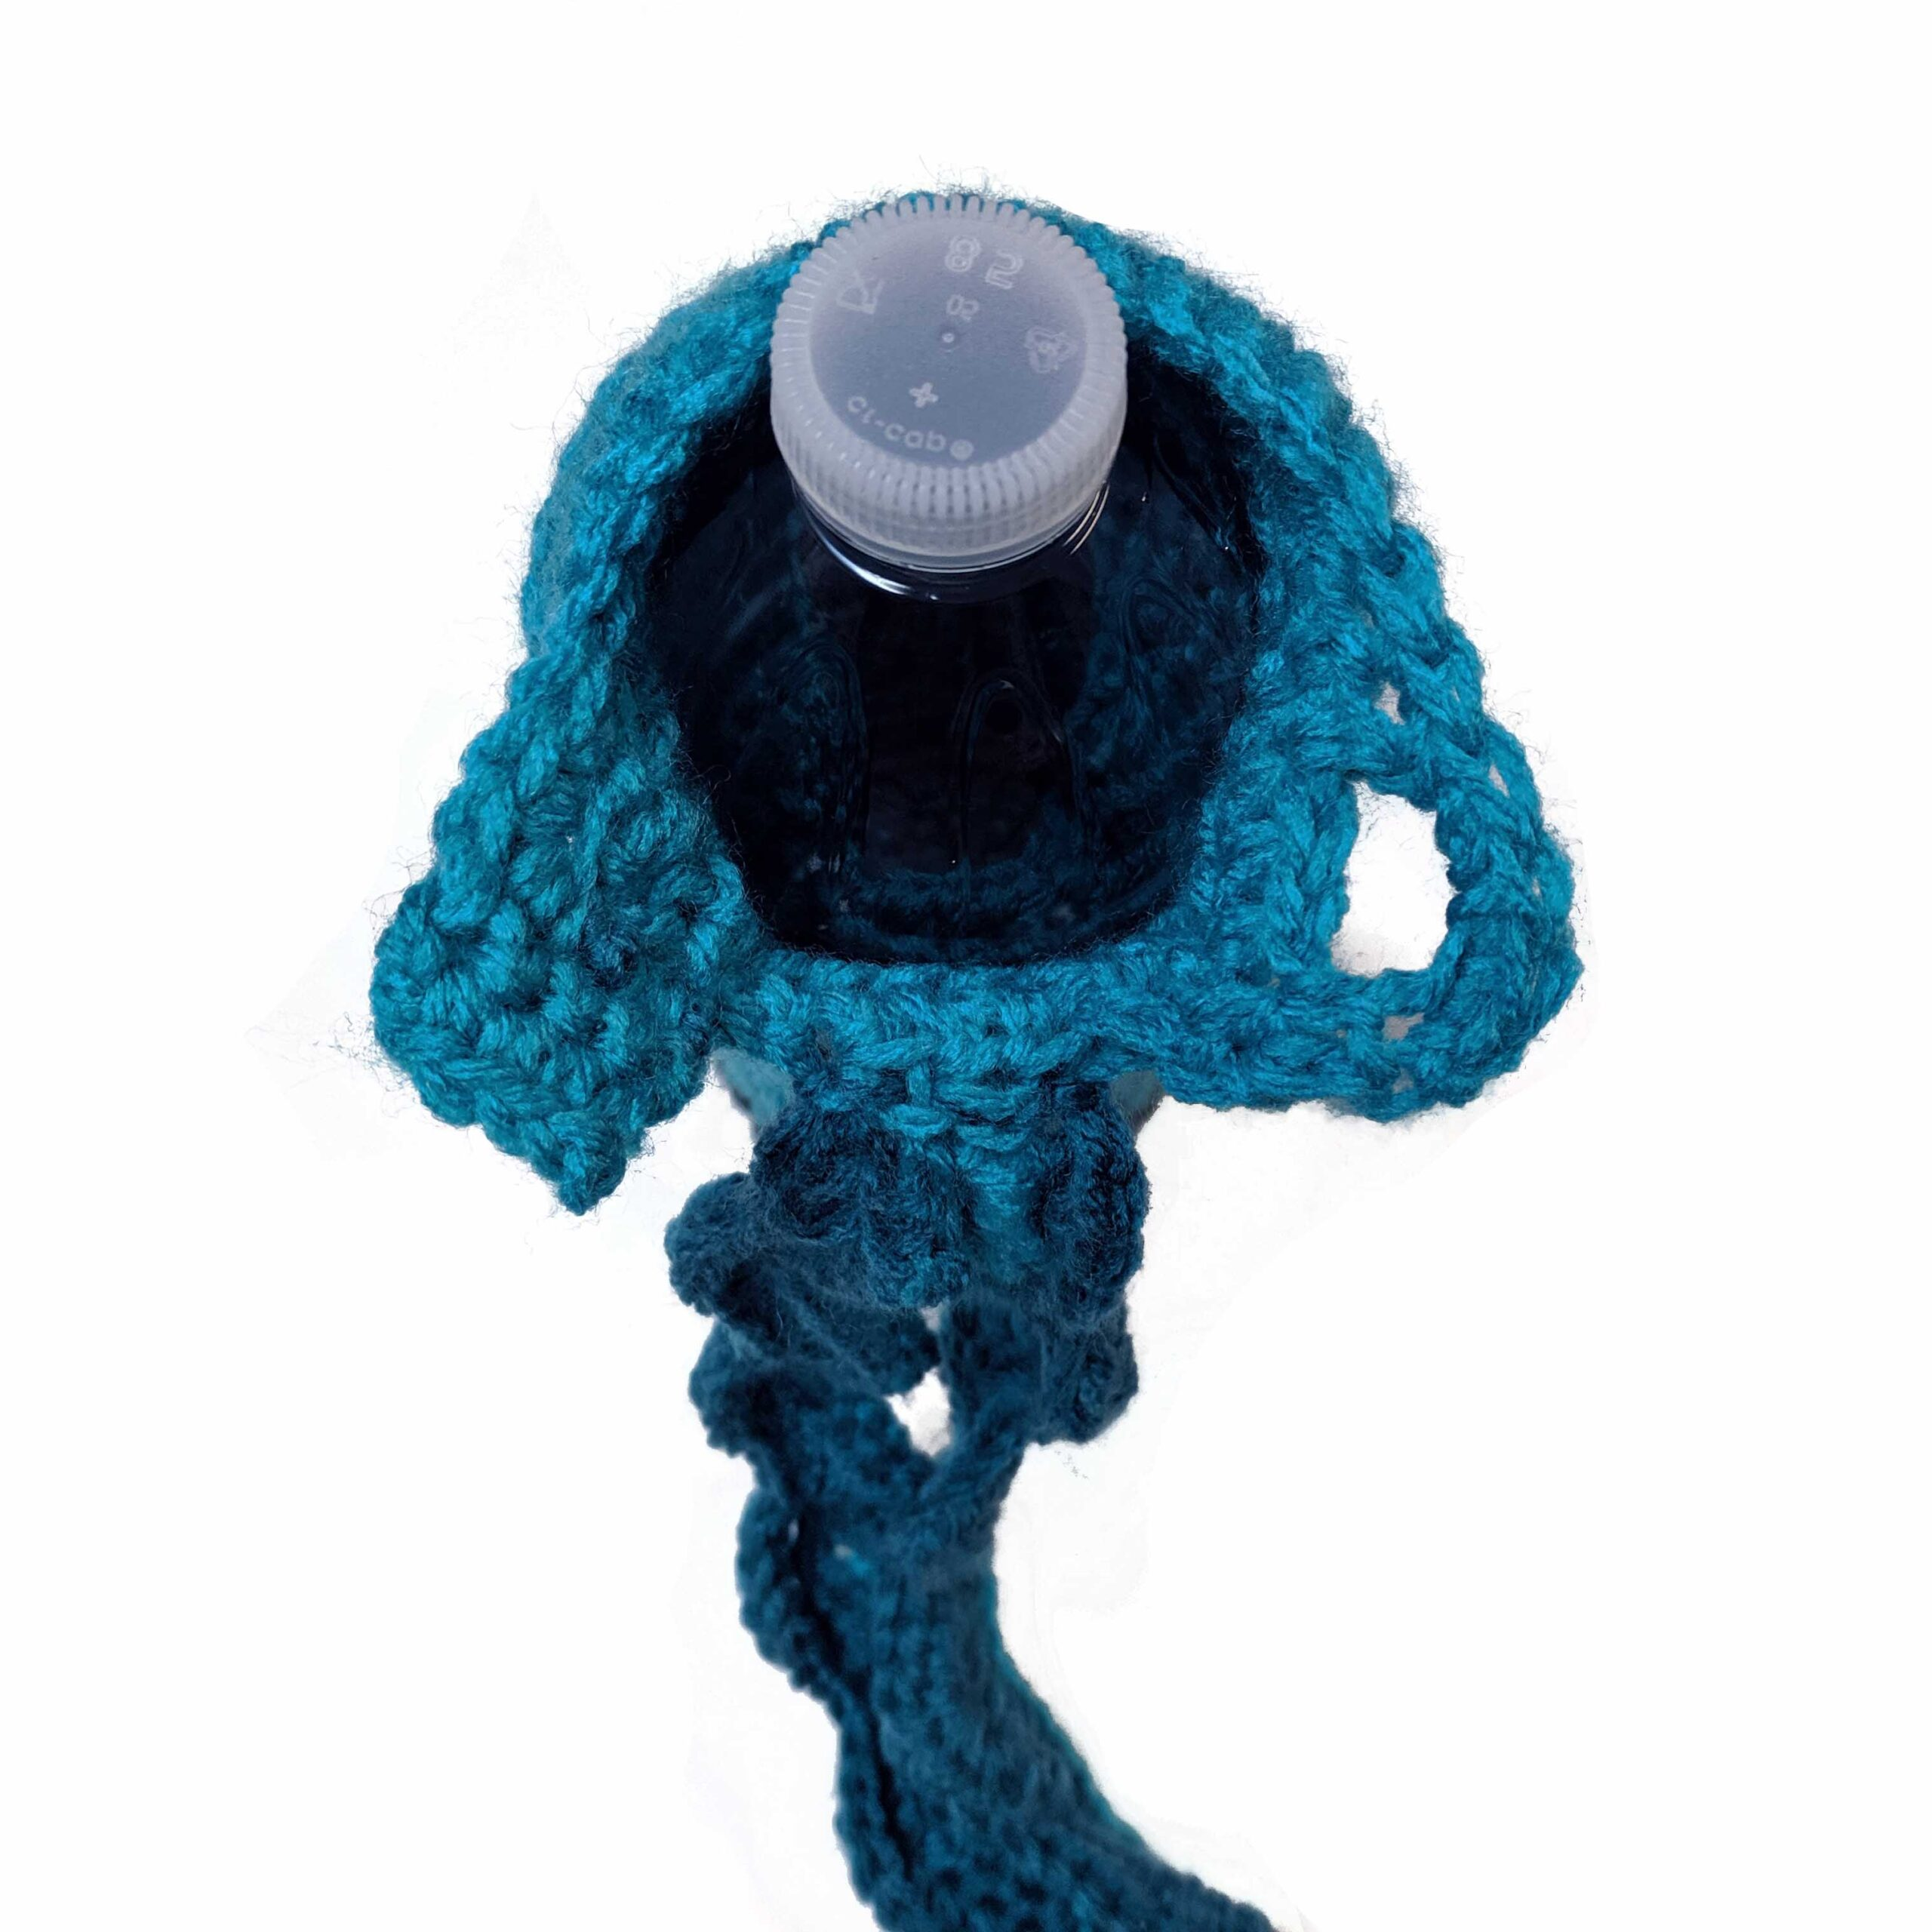 water bottle cozy crochet